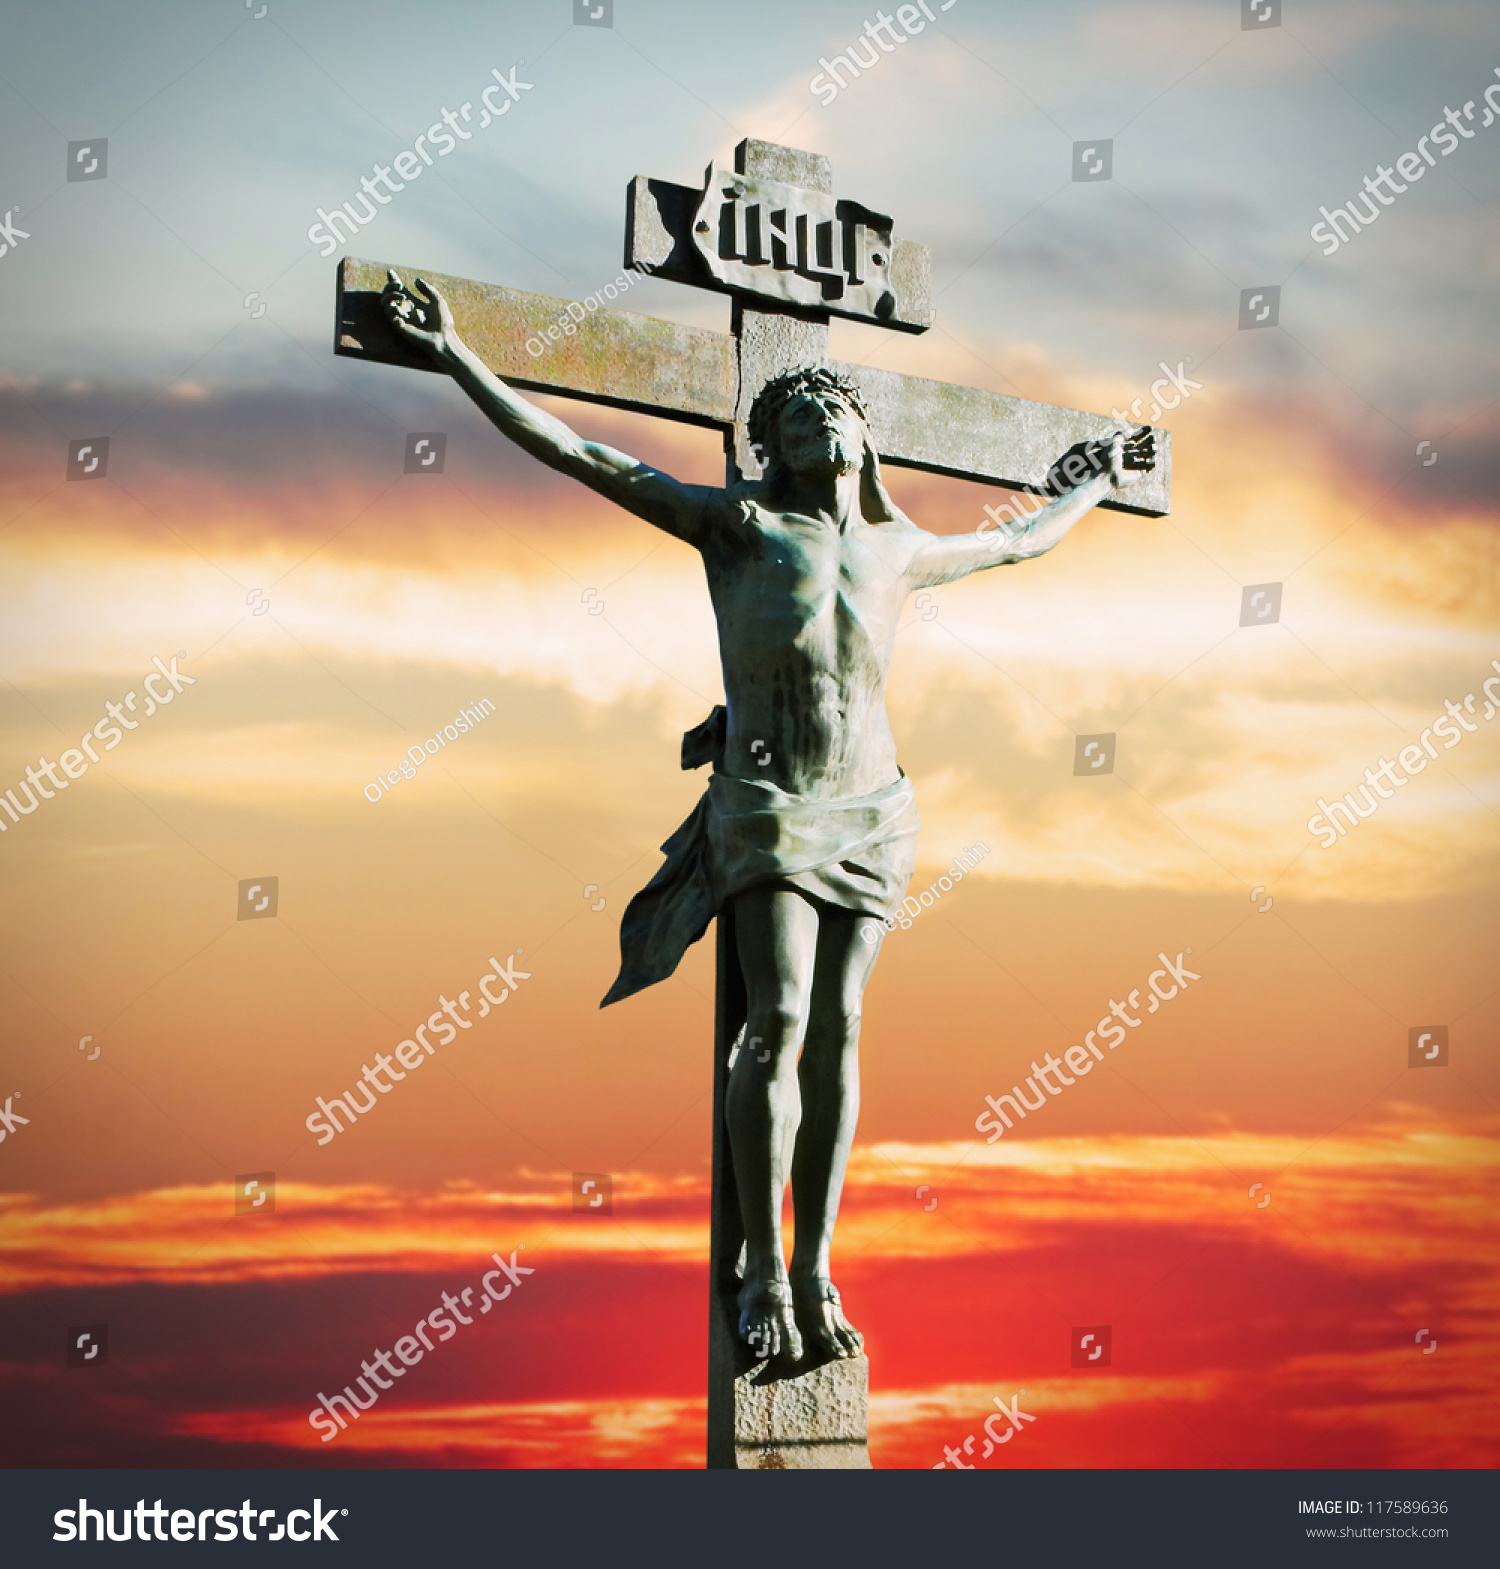 Silhouette of the holy cross on background of storm clouds stock - Crucifixion Of Jesus Christ On The Sunset In The Sky